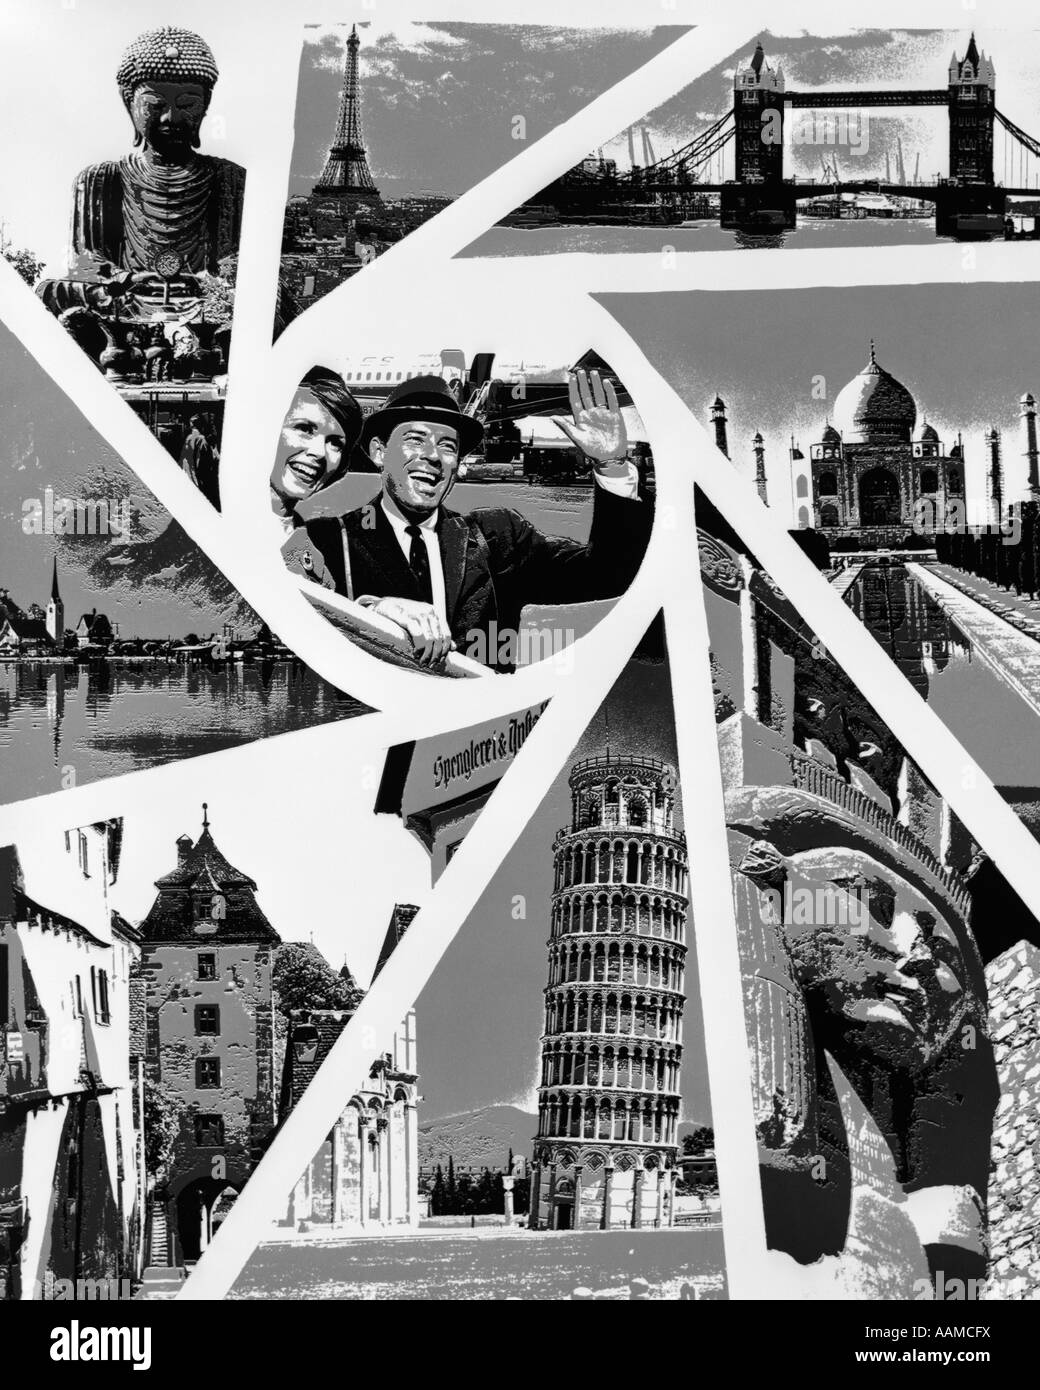 1970s LINE-TONE MONTAGE OF WORLD TRAVEL IMAGES IN EACH TRIANGULAR PANEL OF CAMERA SHUTTER WITH COUPLE AT AIRPORT - Stock Image